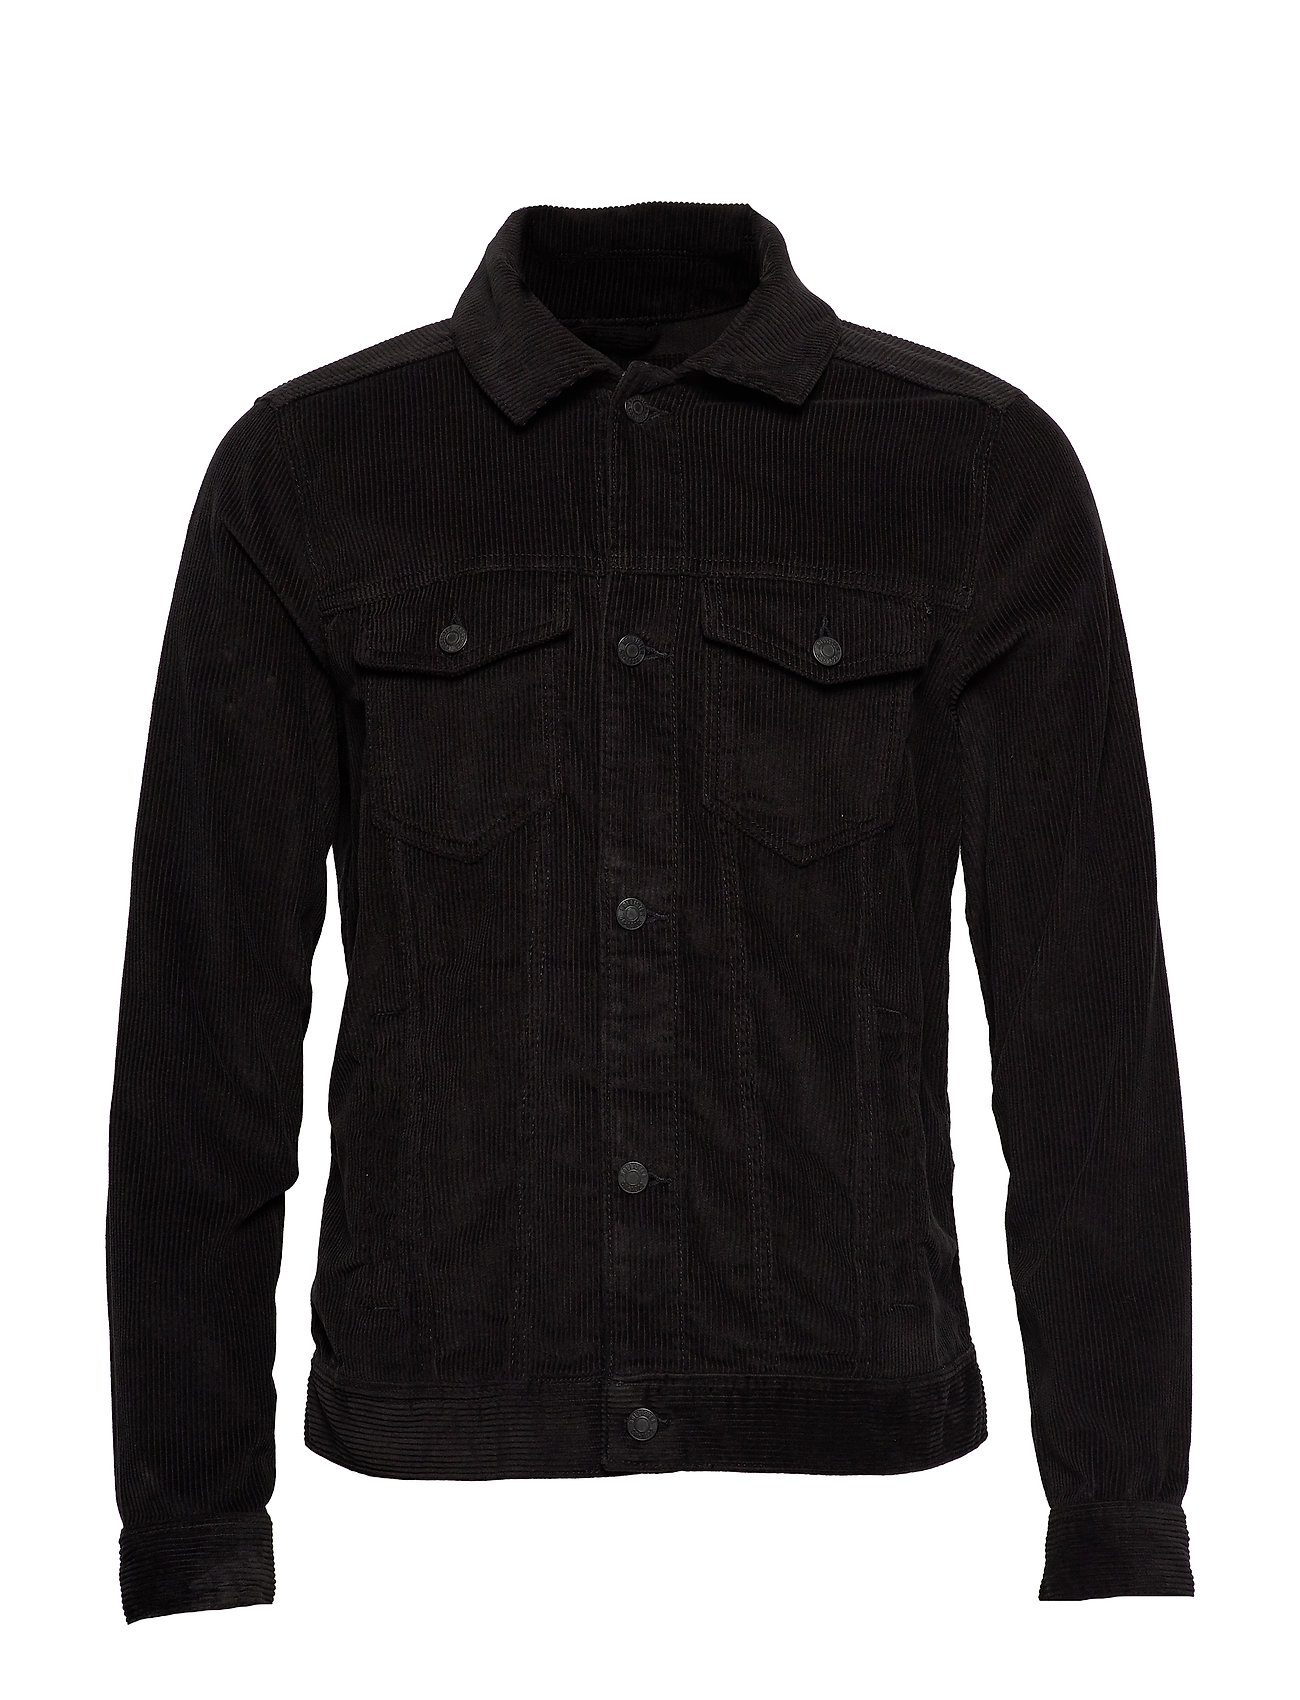 Hollister Twofer Jacket - BLACK DD